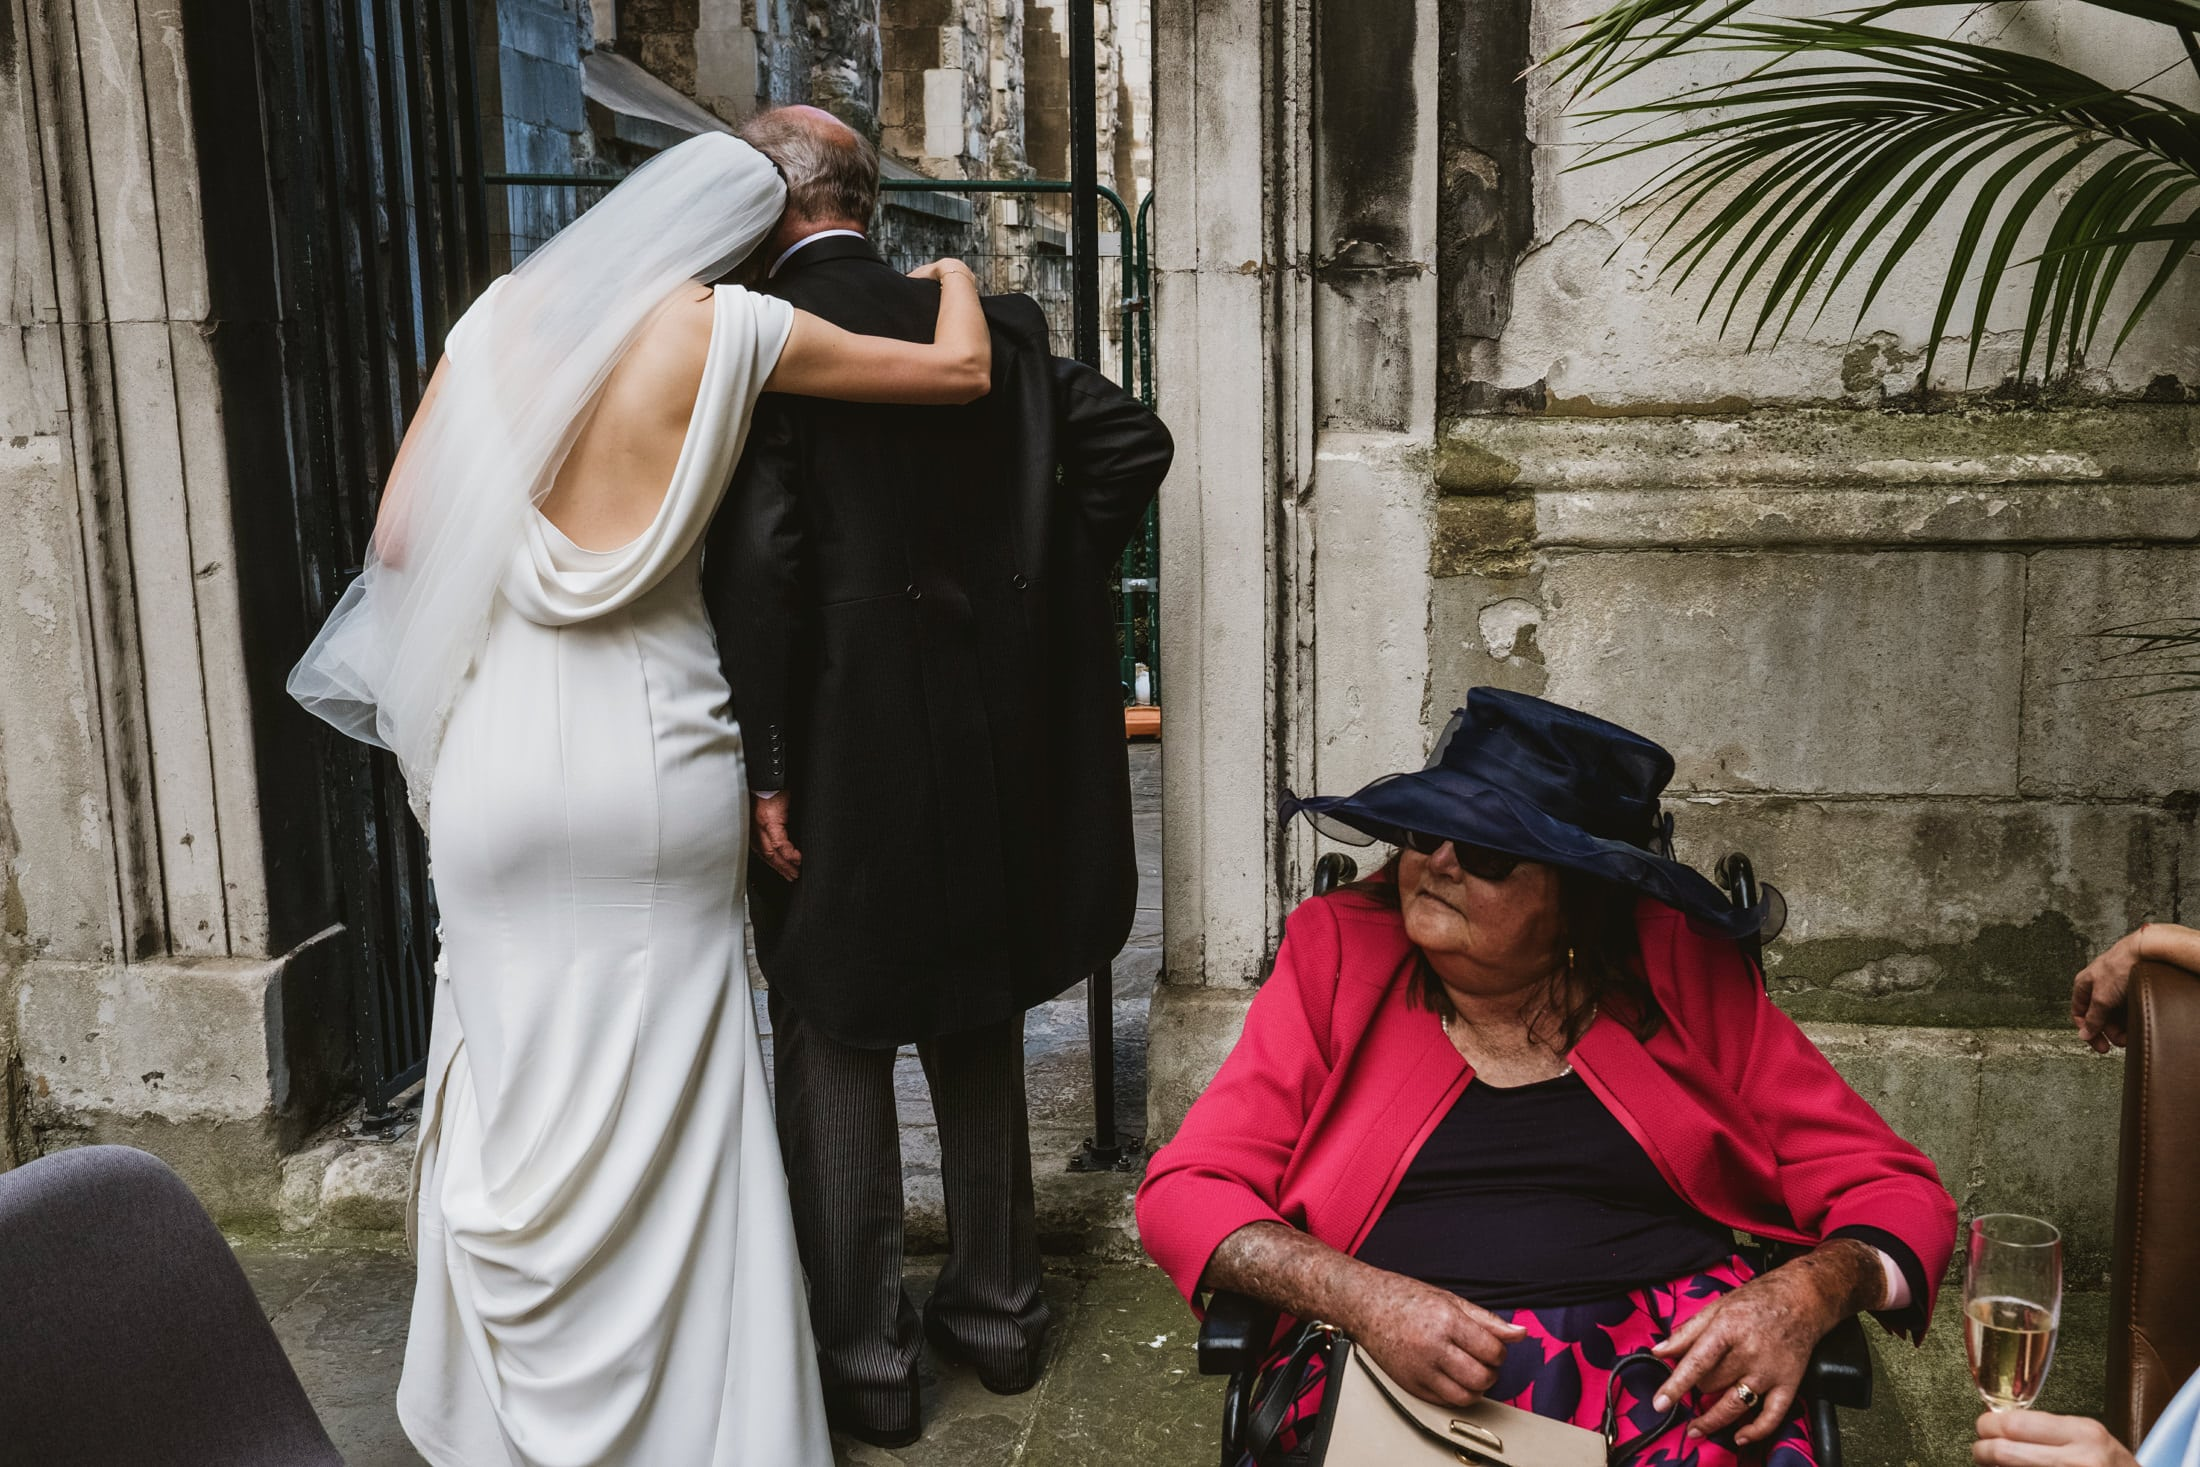 A bride places her head on the shoulder of her father standing beside her, both with their backs to camera. On the right of the frame is a woman seated in a wheelchair wearing a wide brimmed hat and sunglasses